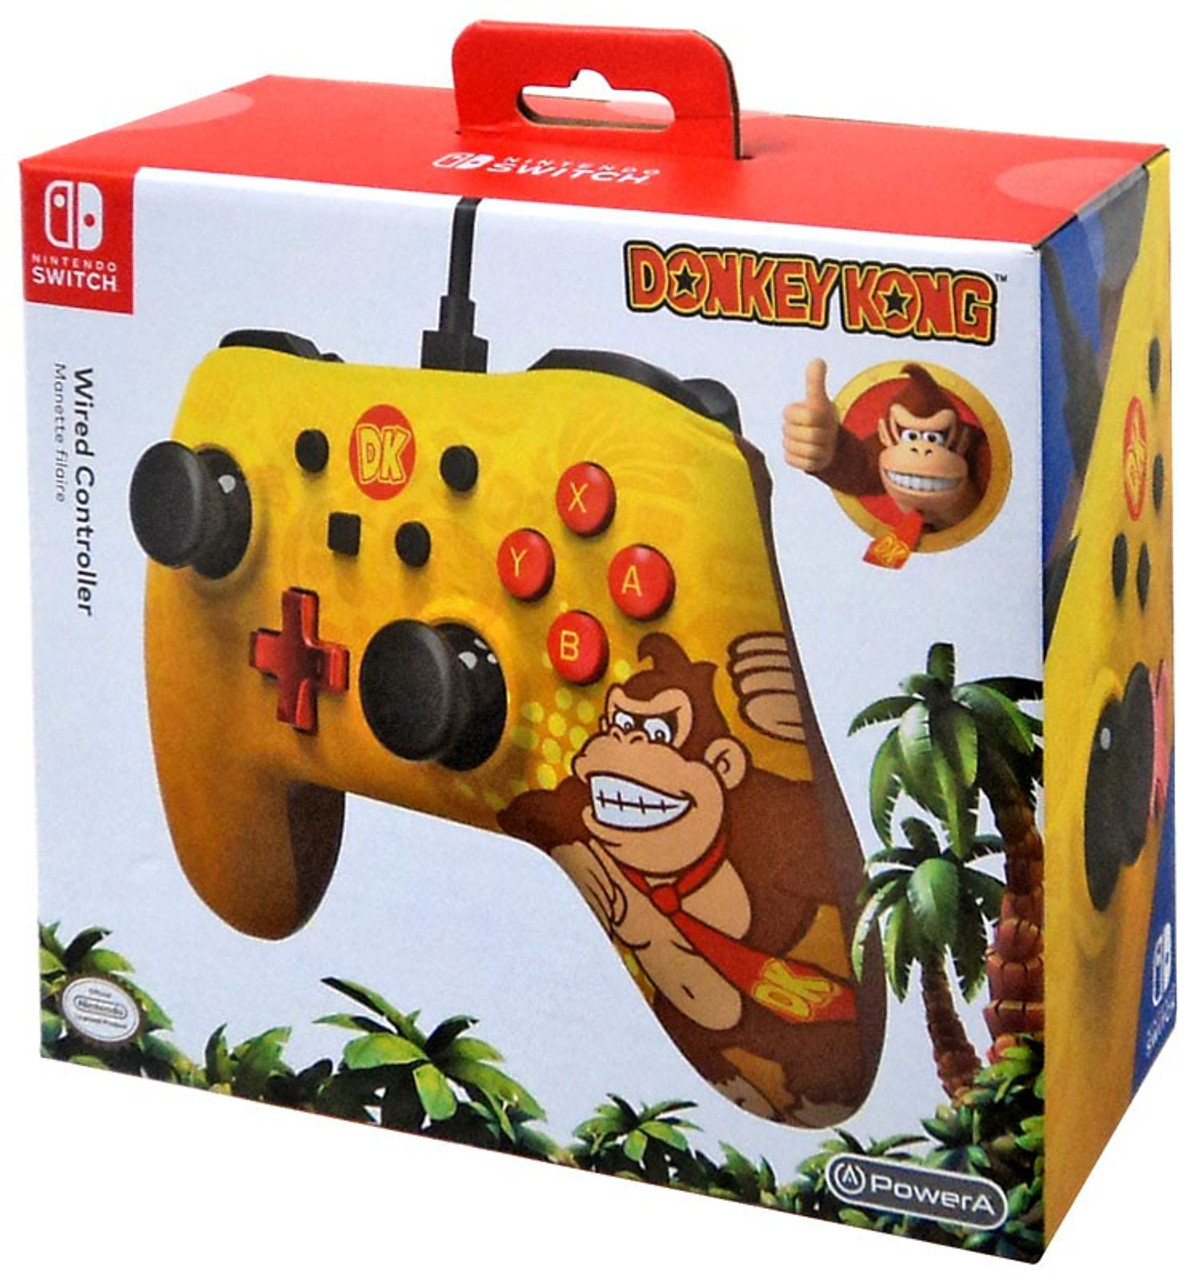 Nintendo Switch Donkey Kong Video Game Controller Power A